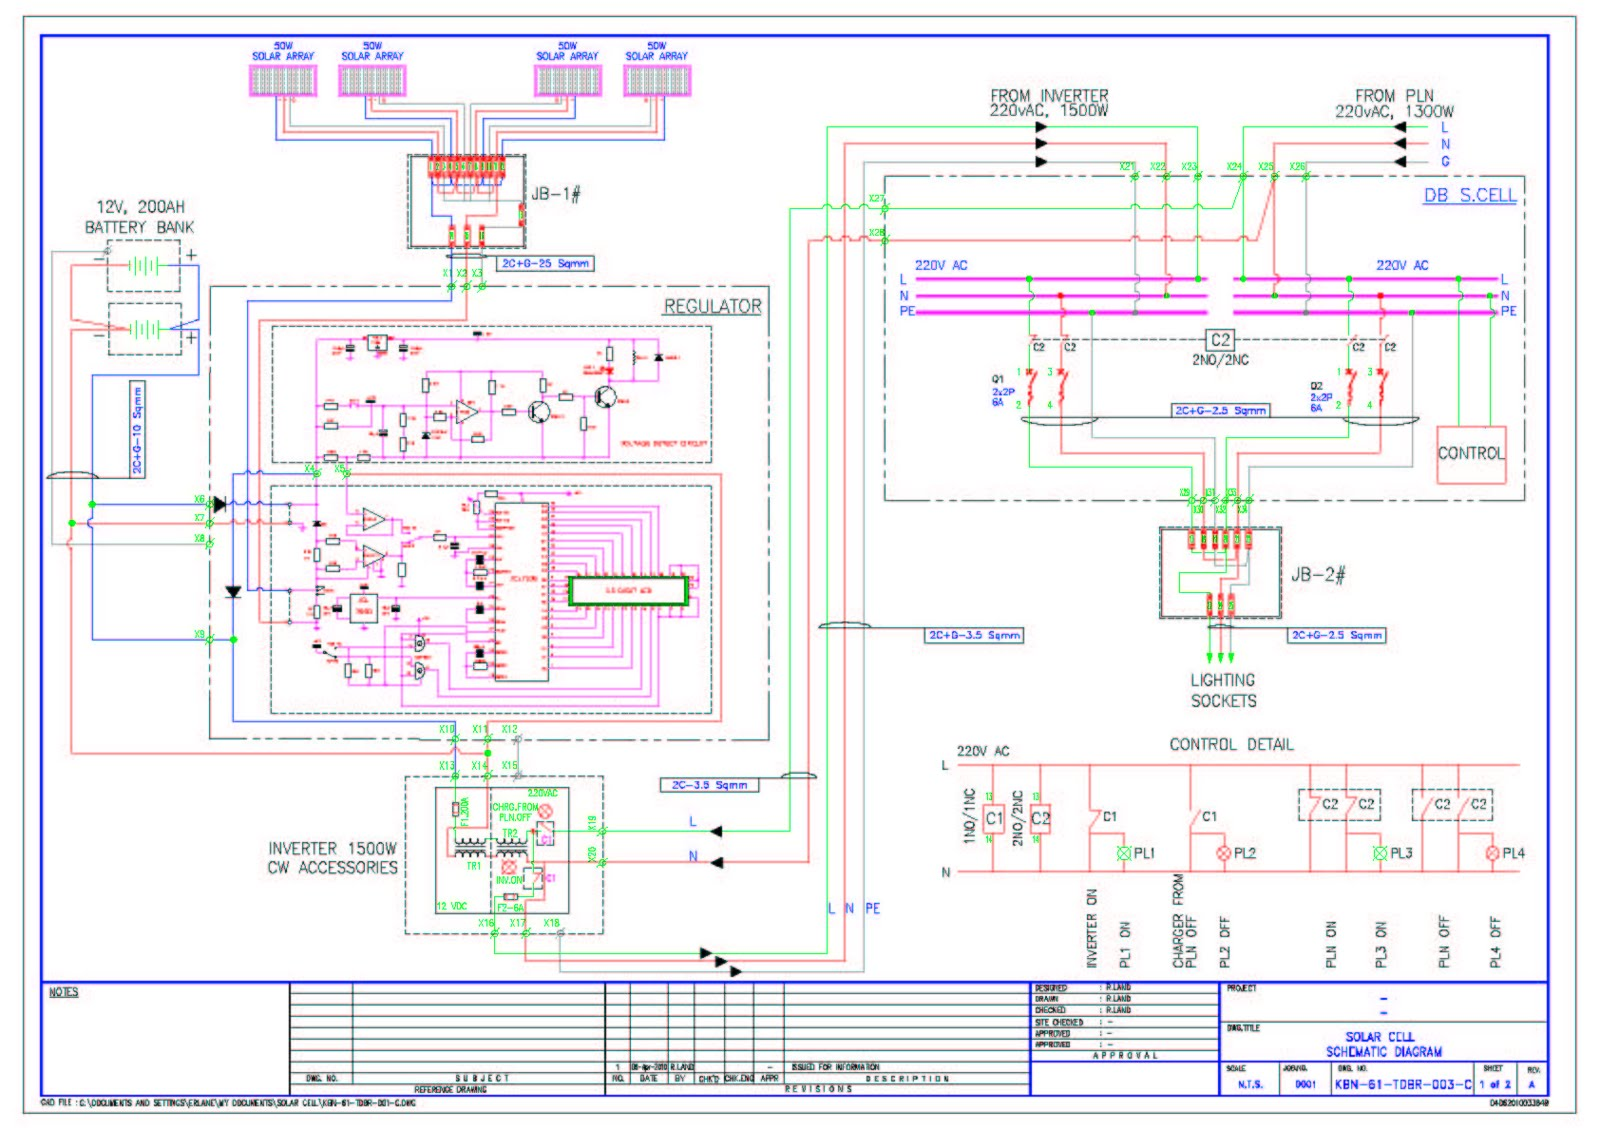 wiring diagram panel pompa submersible wiring r land baidin egwar st 2010 on wiring diagram panel pompa submersible